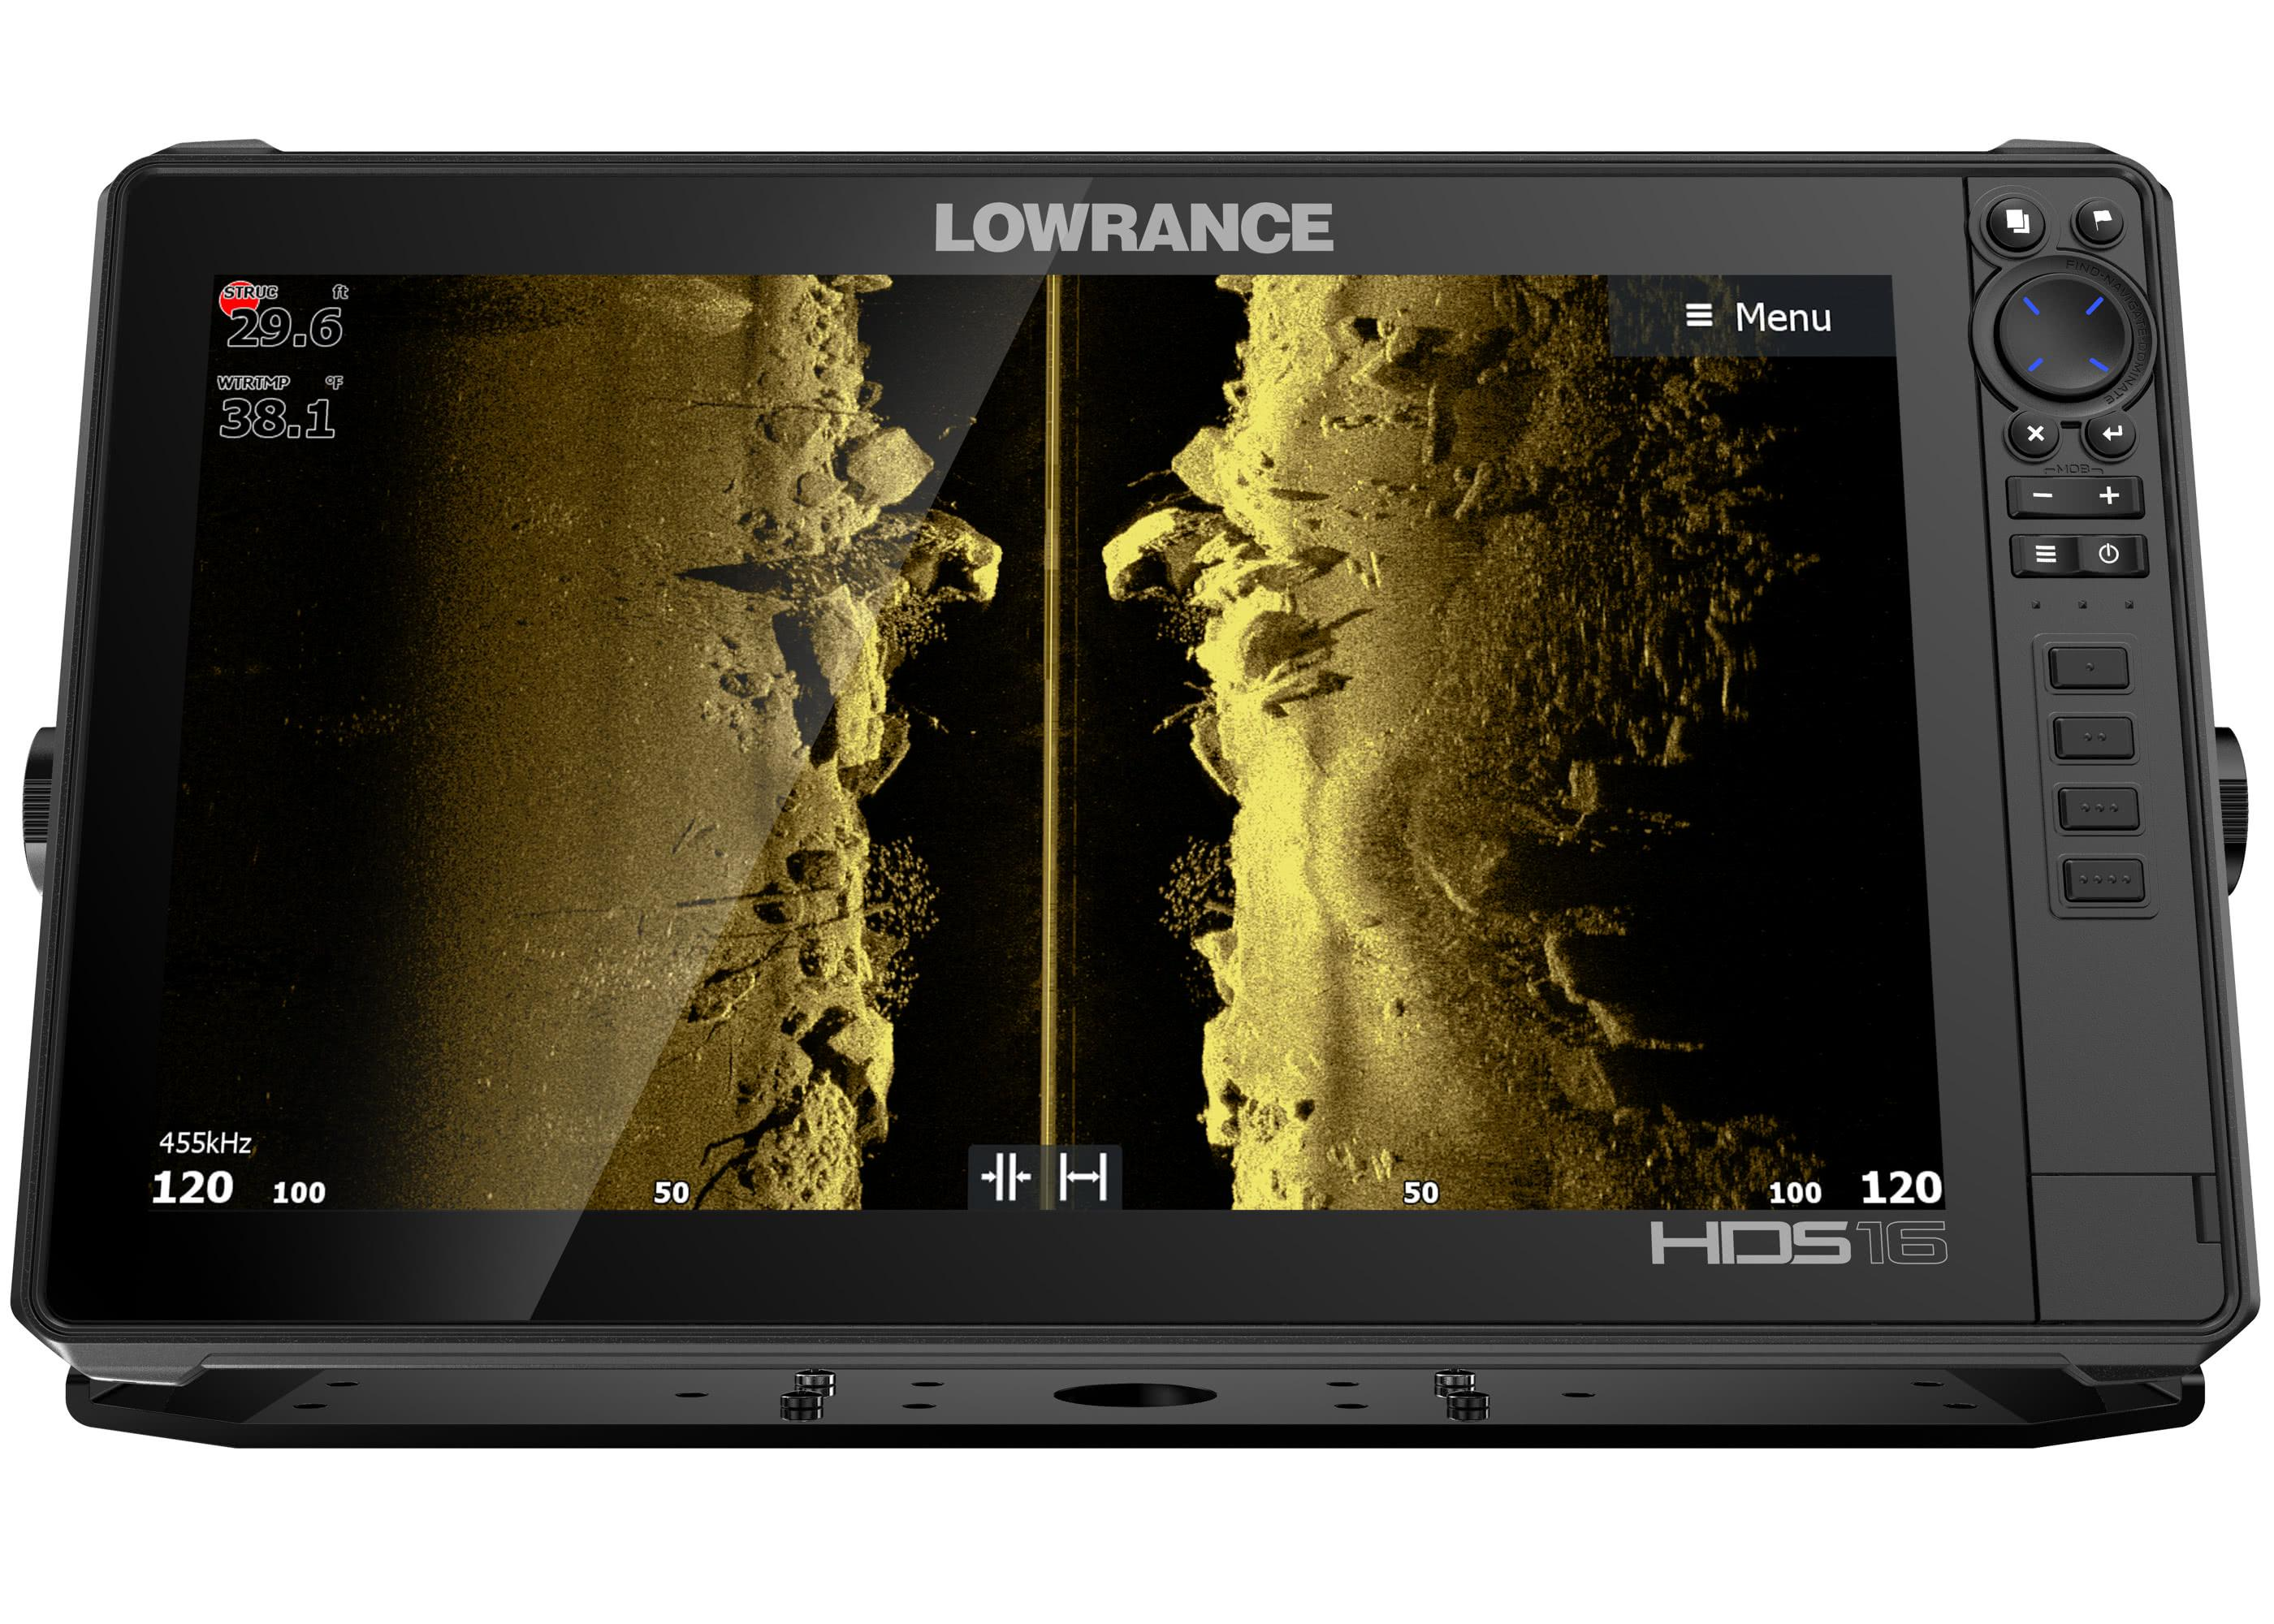 81691_81692_LOWRANCE_HDS-16_Live (4)-Bearbeitet.jpg